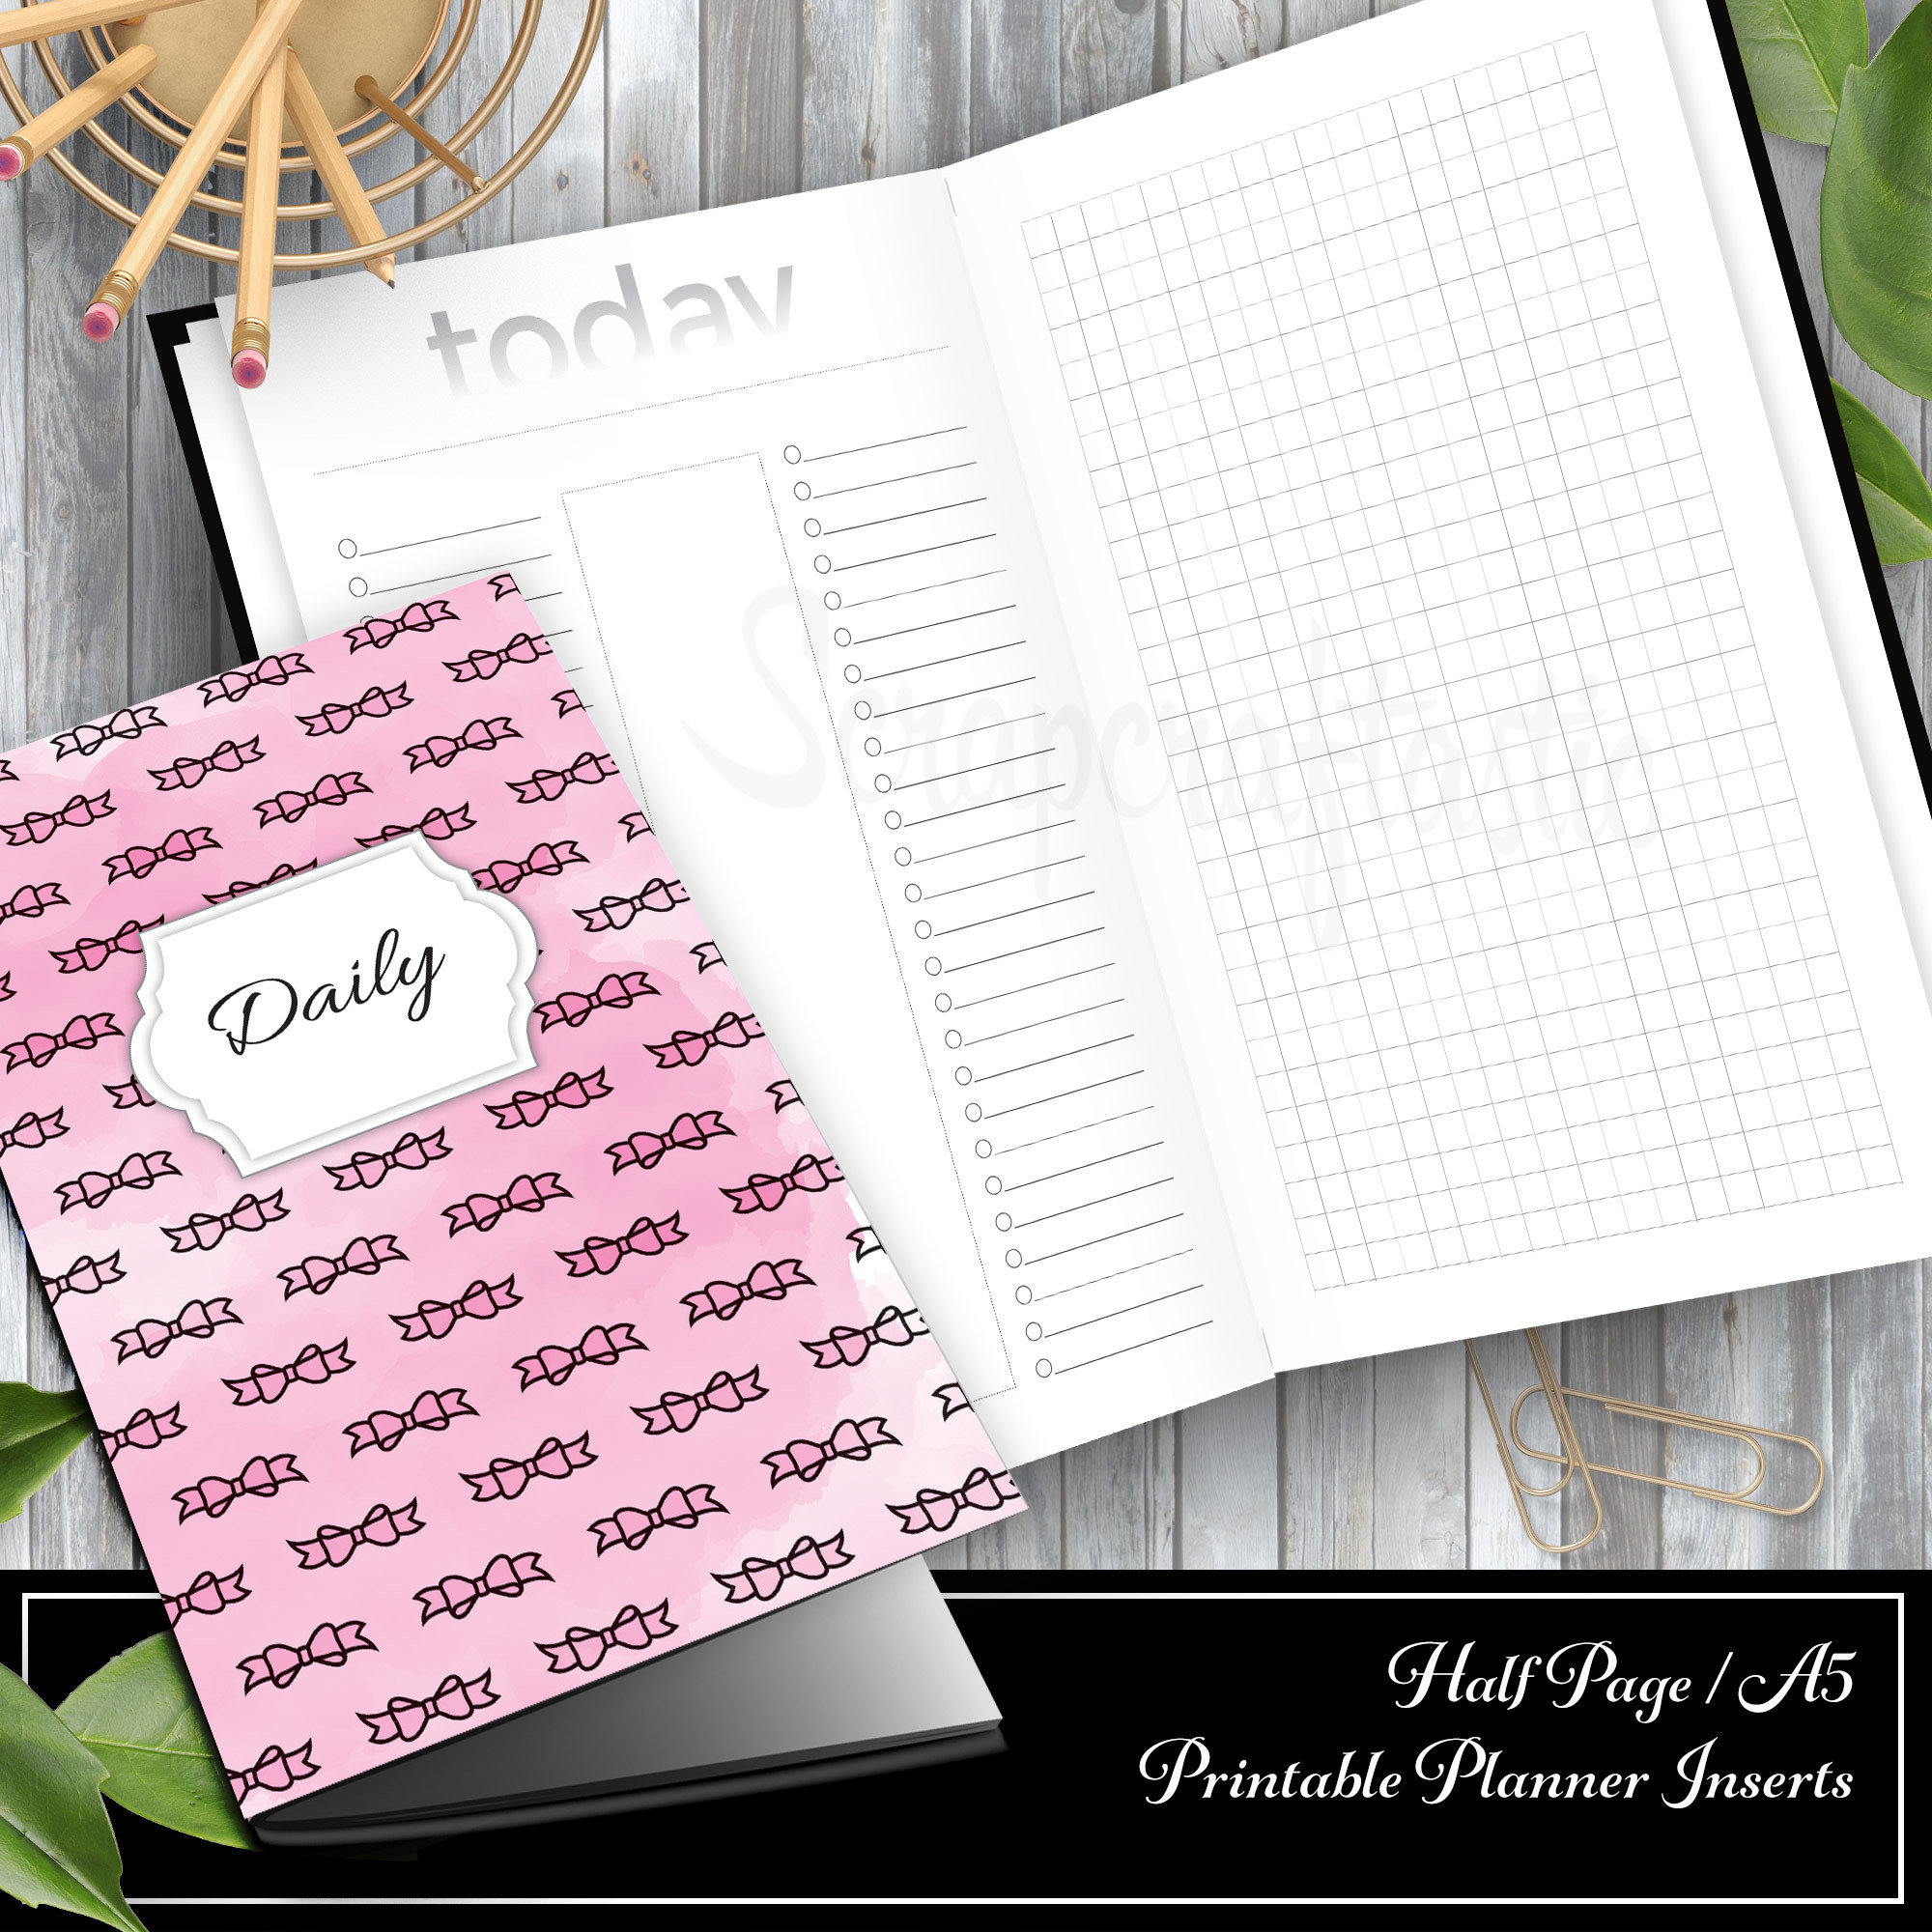 Daily Lists, Column and Grid A5/Half Page Traveler's Notebook Printable Inserts 00317